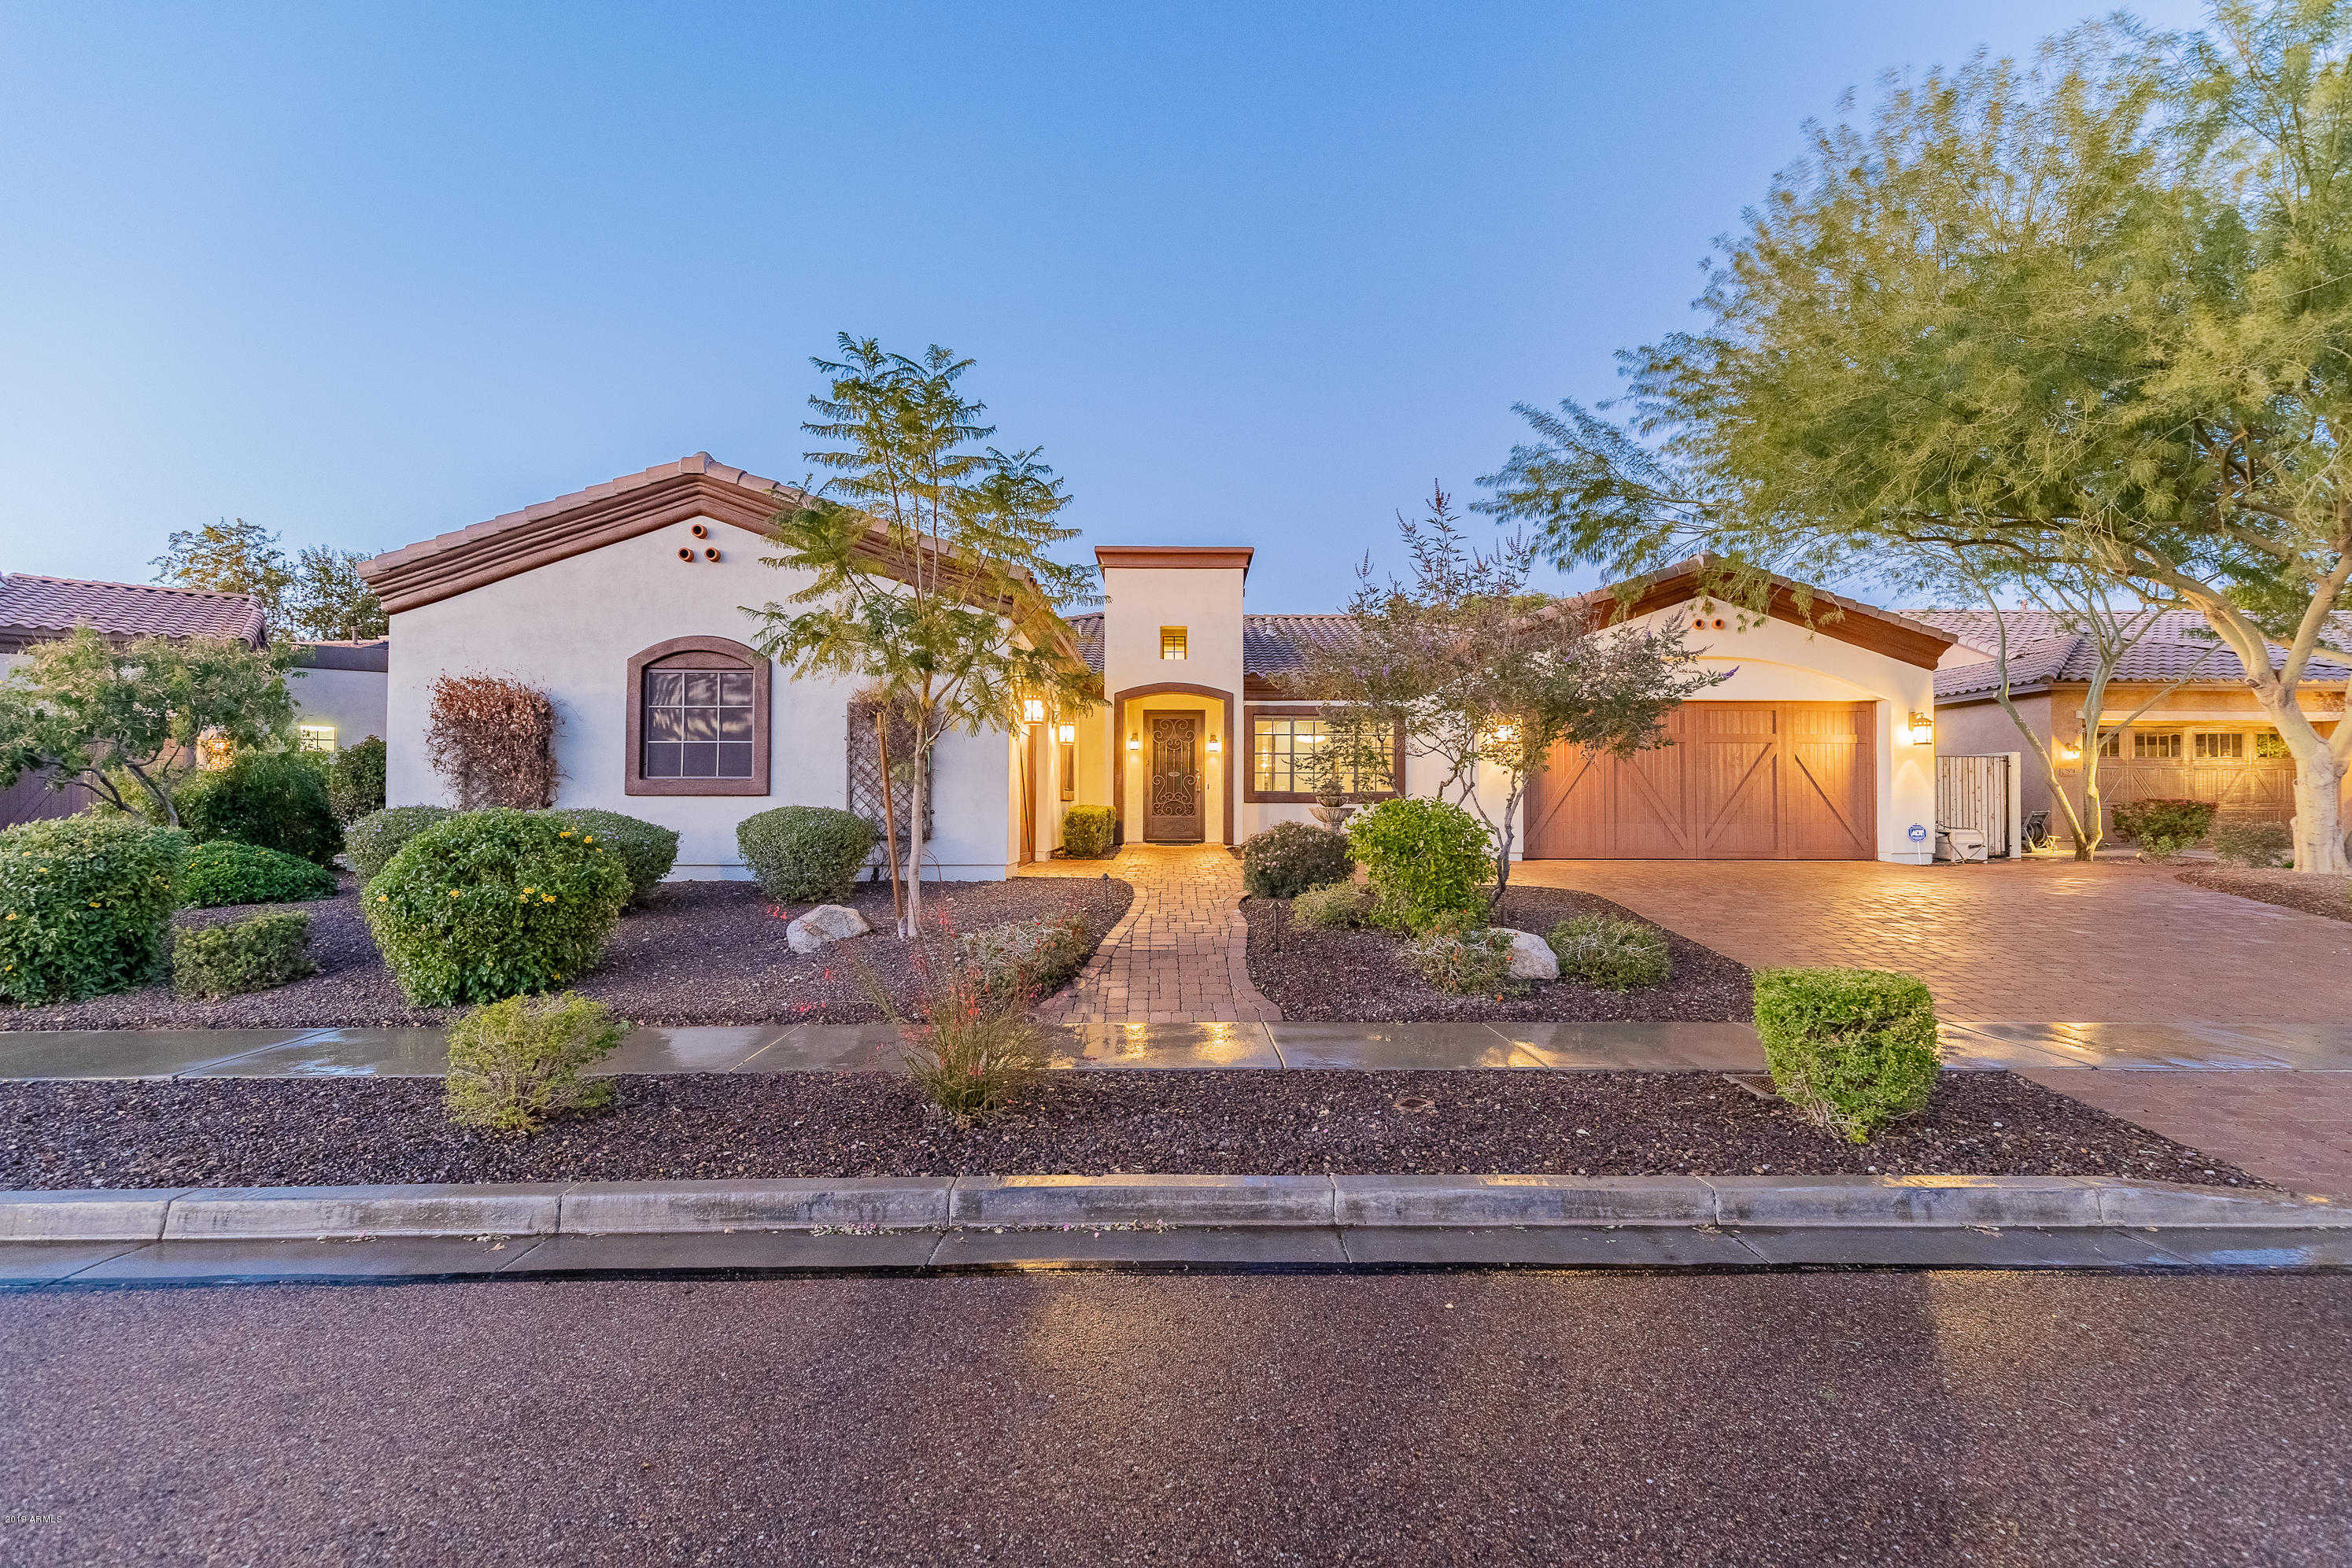 $900,000 - 5Br/6Ba - Home for Sale in Reserve At Eagle Heights, Glendale